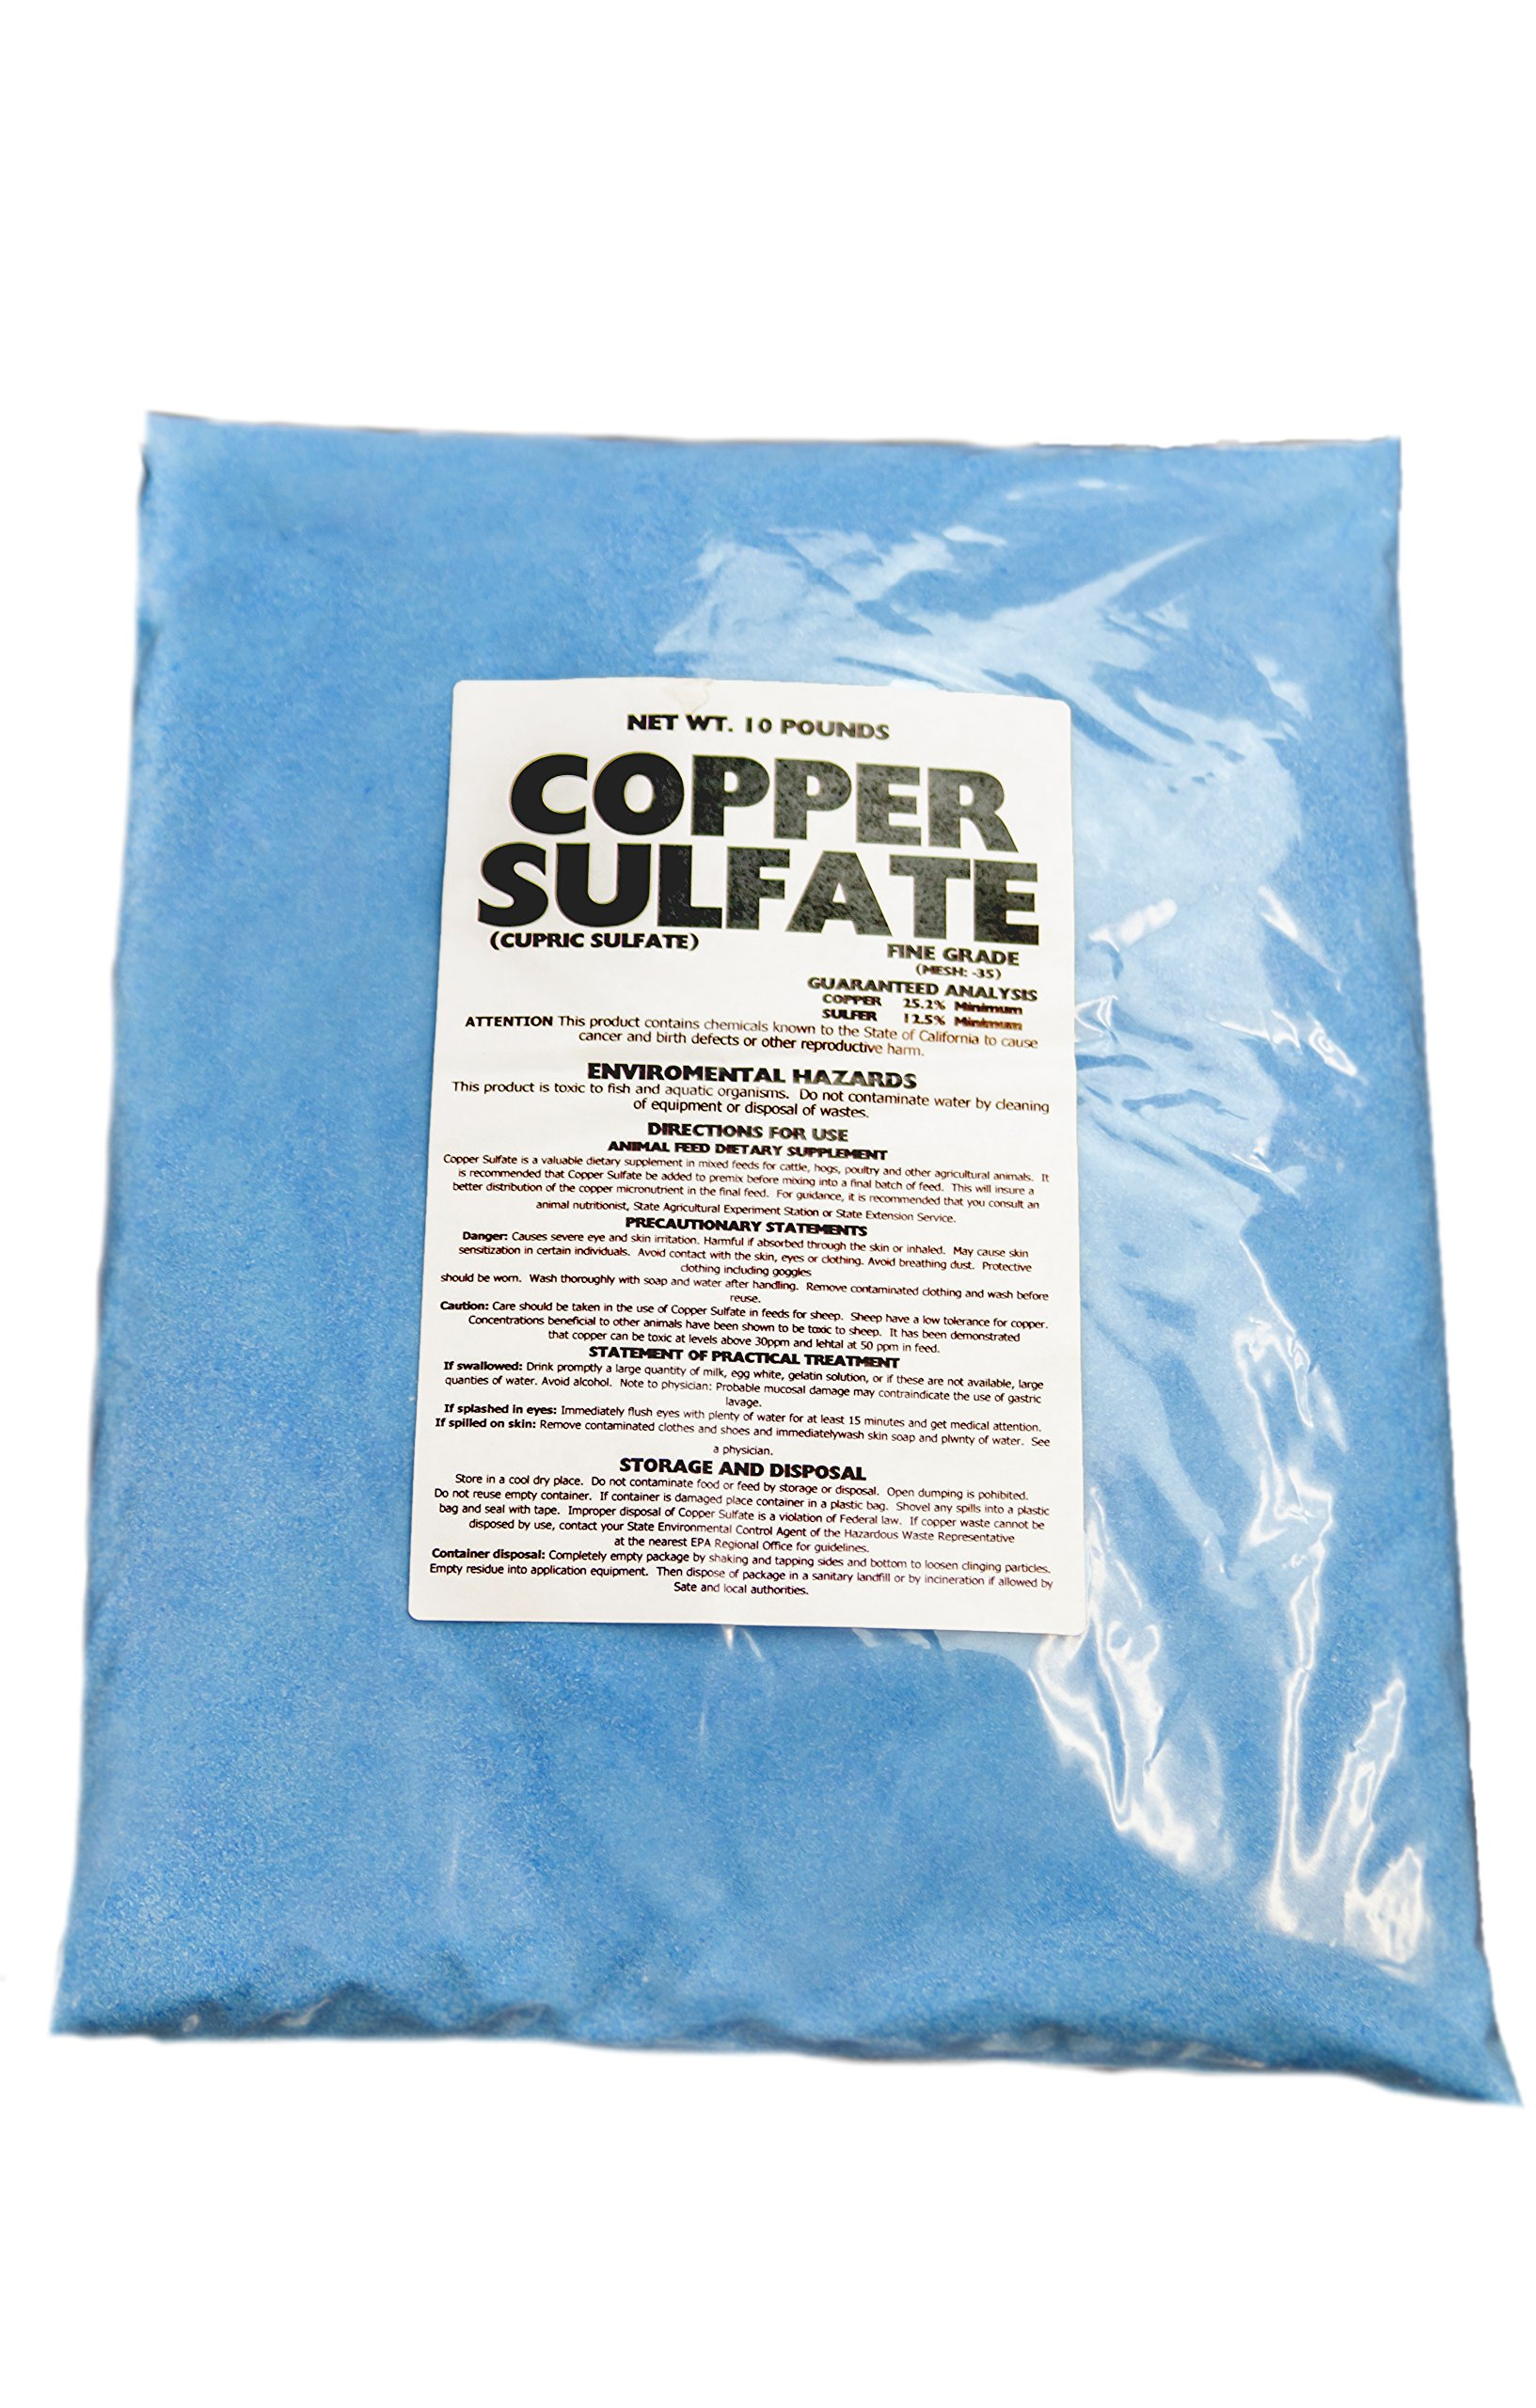 Earthworks Health LLC Copper Sulfate Crystals-10Lb Bag (FINE CRYSTALS) by Earthworks Health LLC